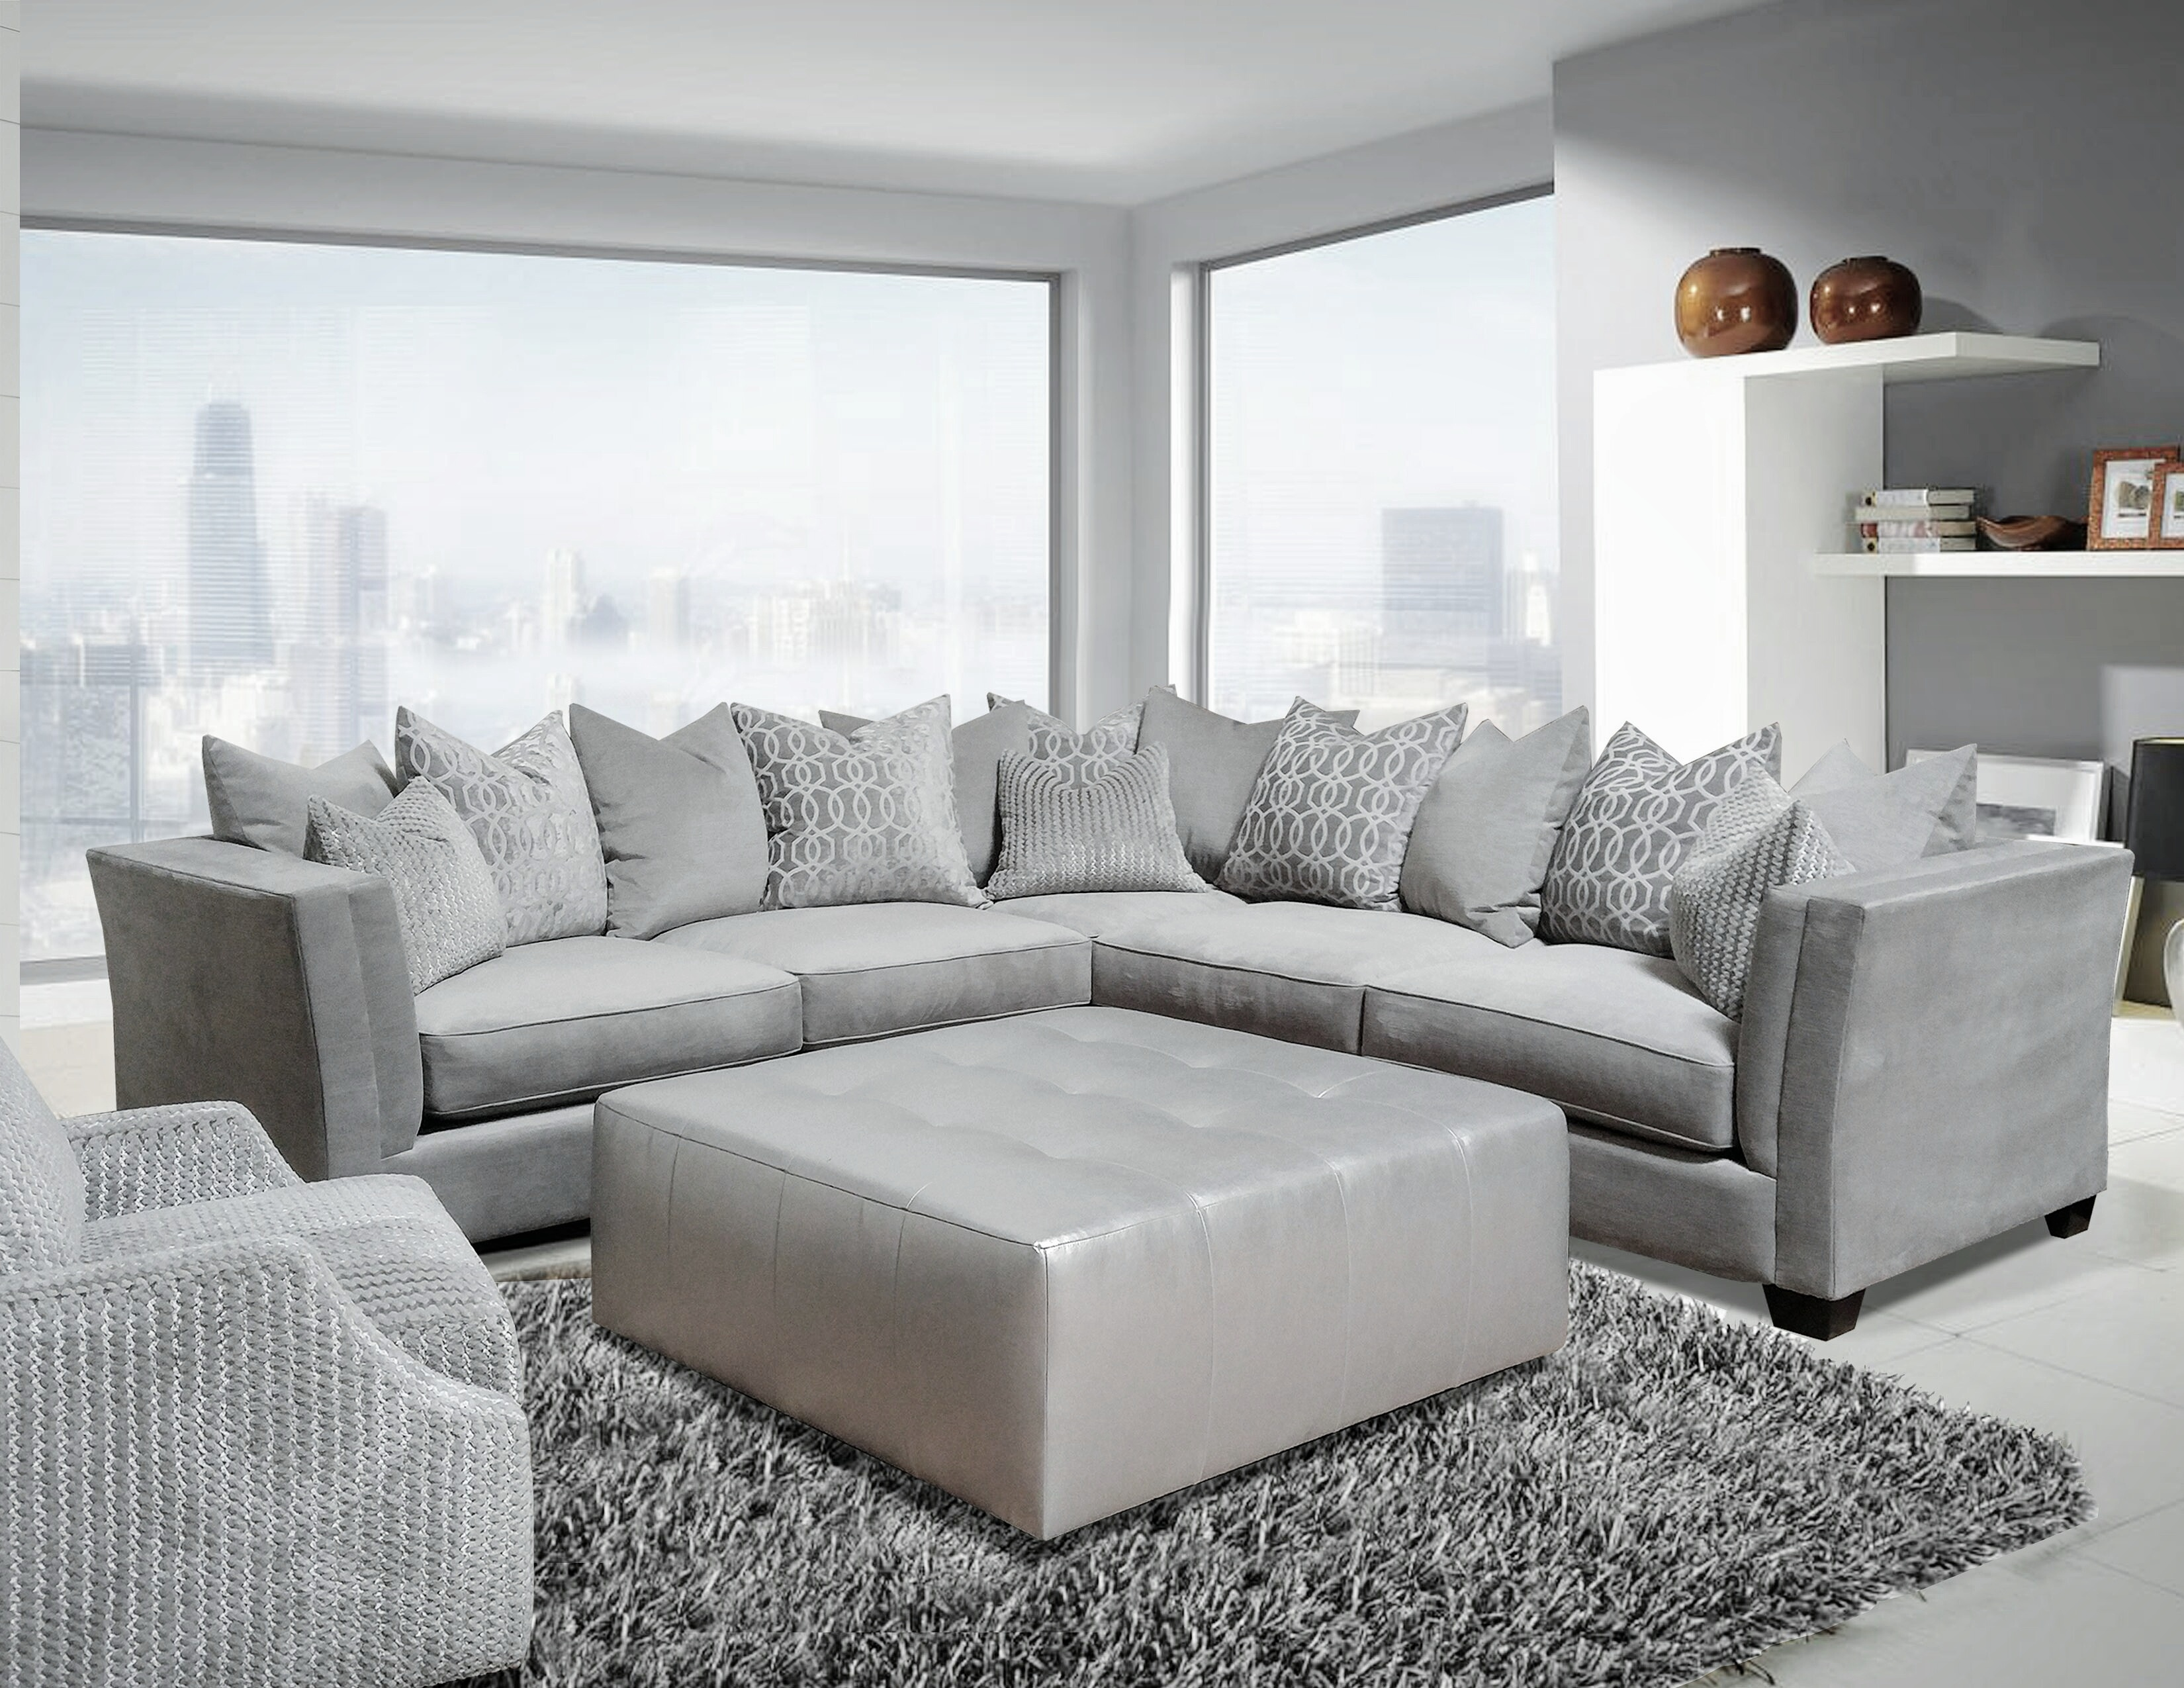 Furniture,Couches,Sectionals,Sofas - John Michael Designs LLC